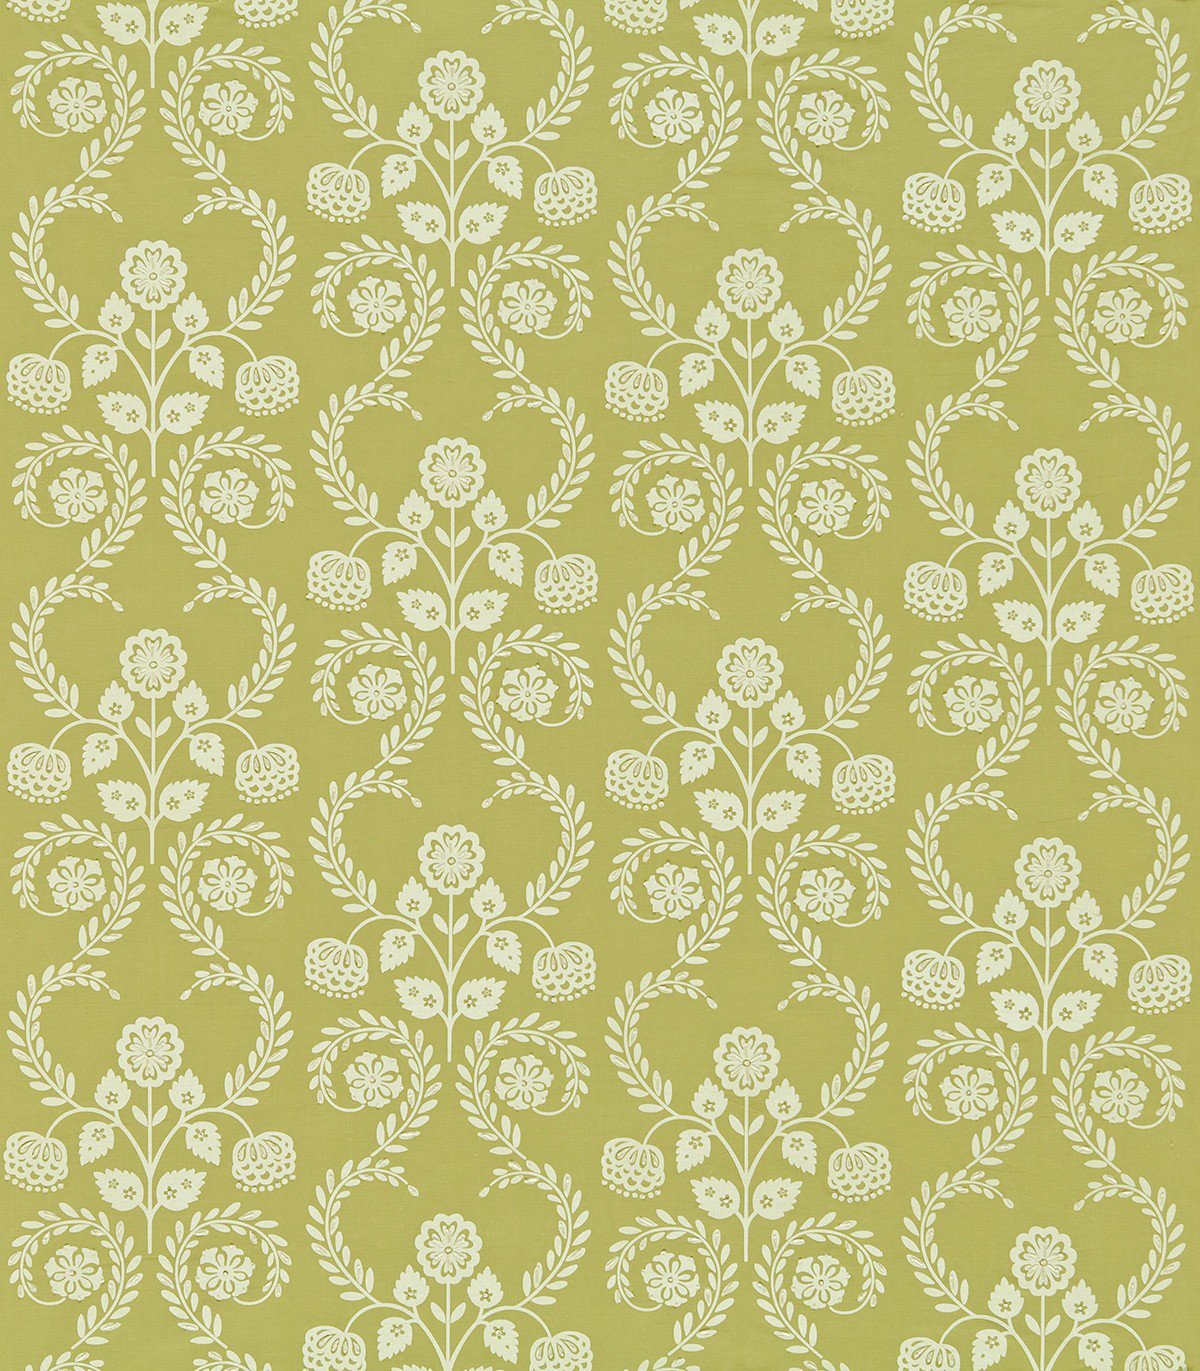 Lucerne by harlequin wallpaper direct for Wallpaper direct